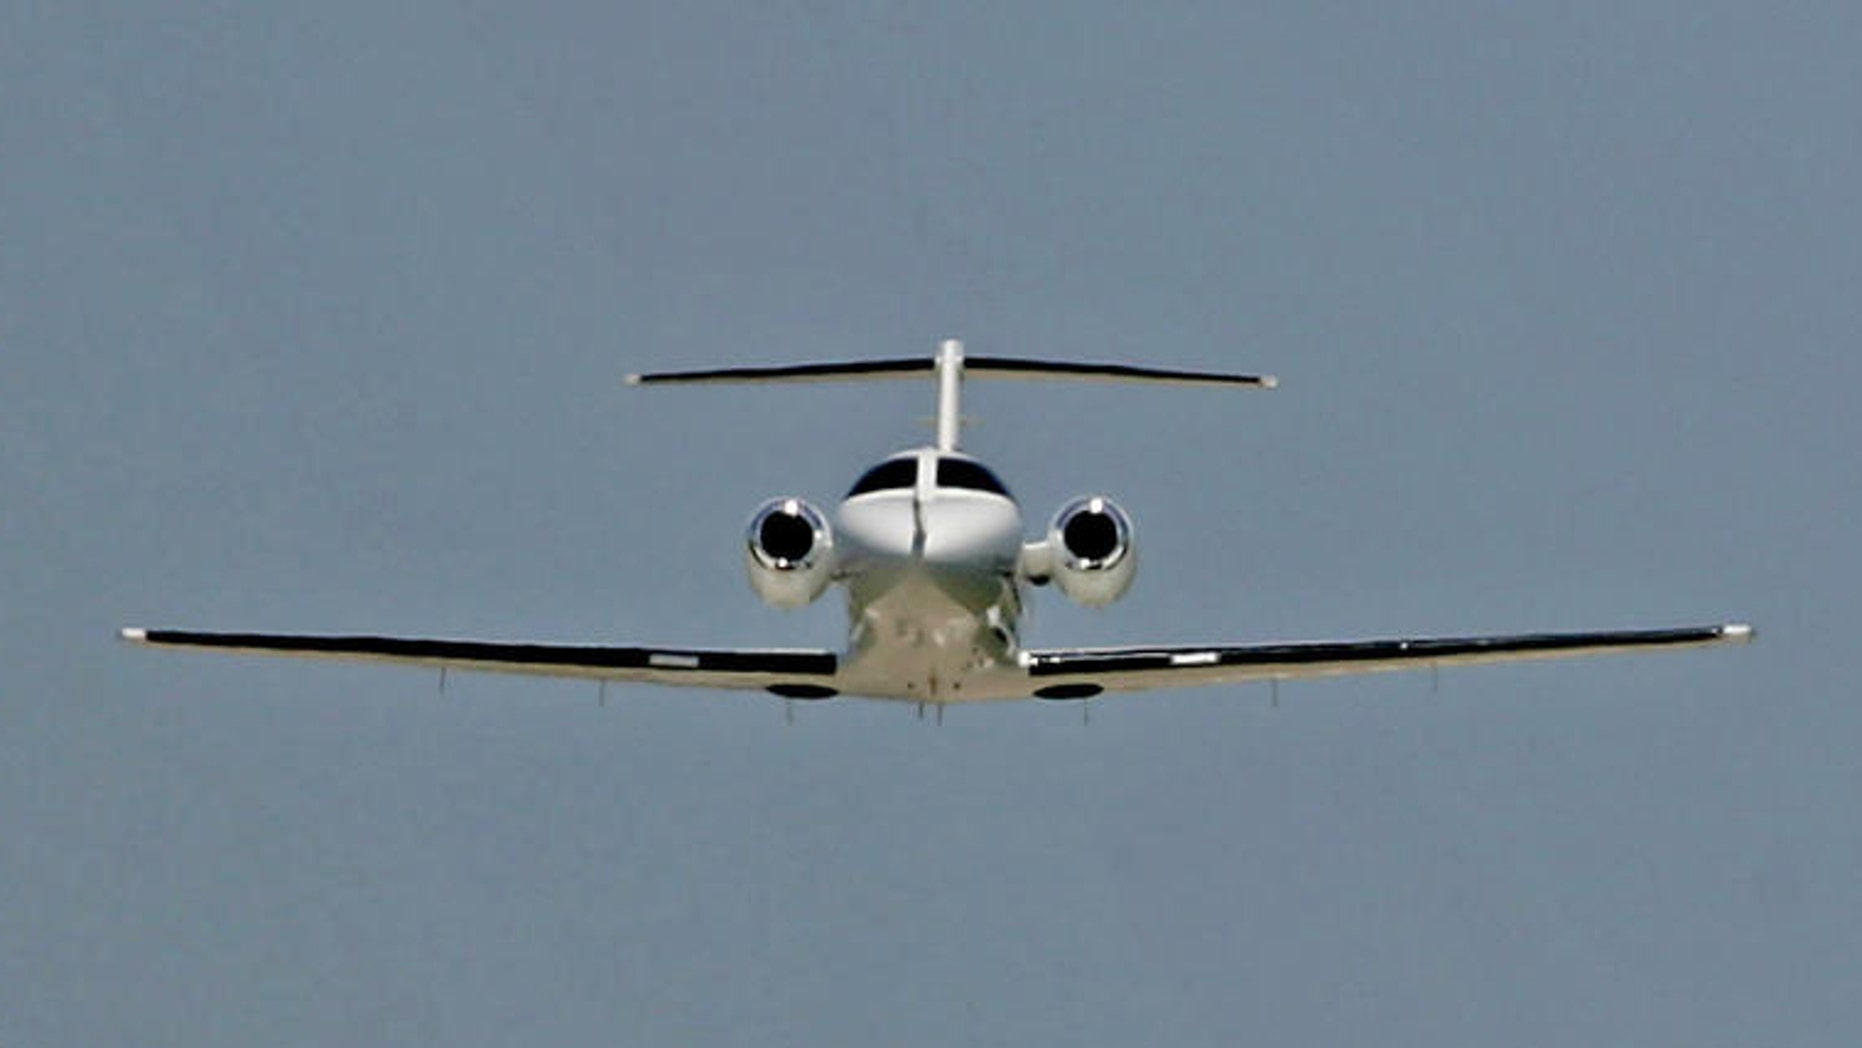 ** ADVANCE FOR WEEKEND EDITIONS, JUNE 25-26 ** A Cessna Citation Mustang business jet takes off for a test flight while a larger business jet comes in for a landing in the distance, June 15, 2005, in Wichita, Kan. Cessna has more than 200 orders for the entry-level business jet .  (AP Photo/Charlie Riedel)